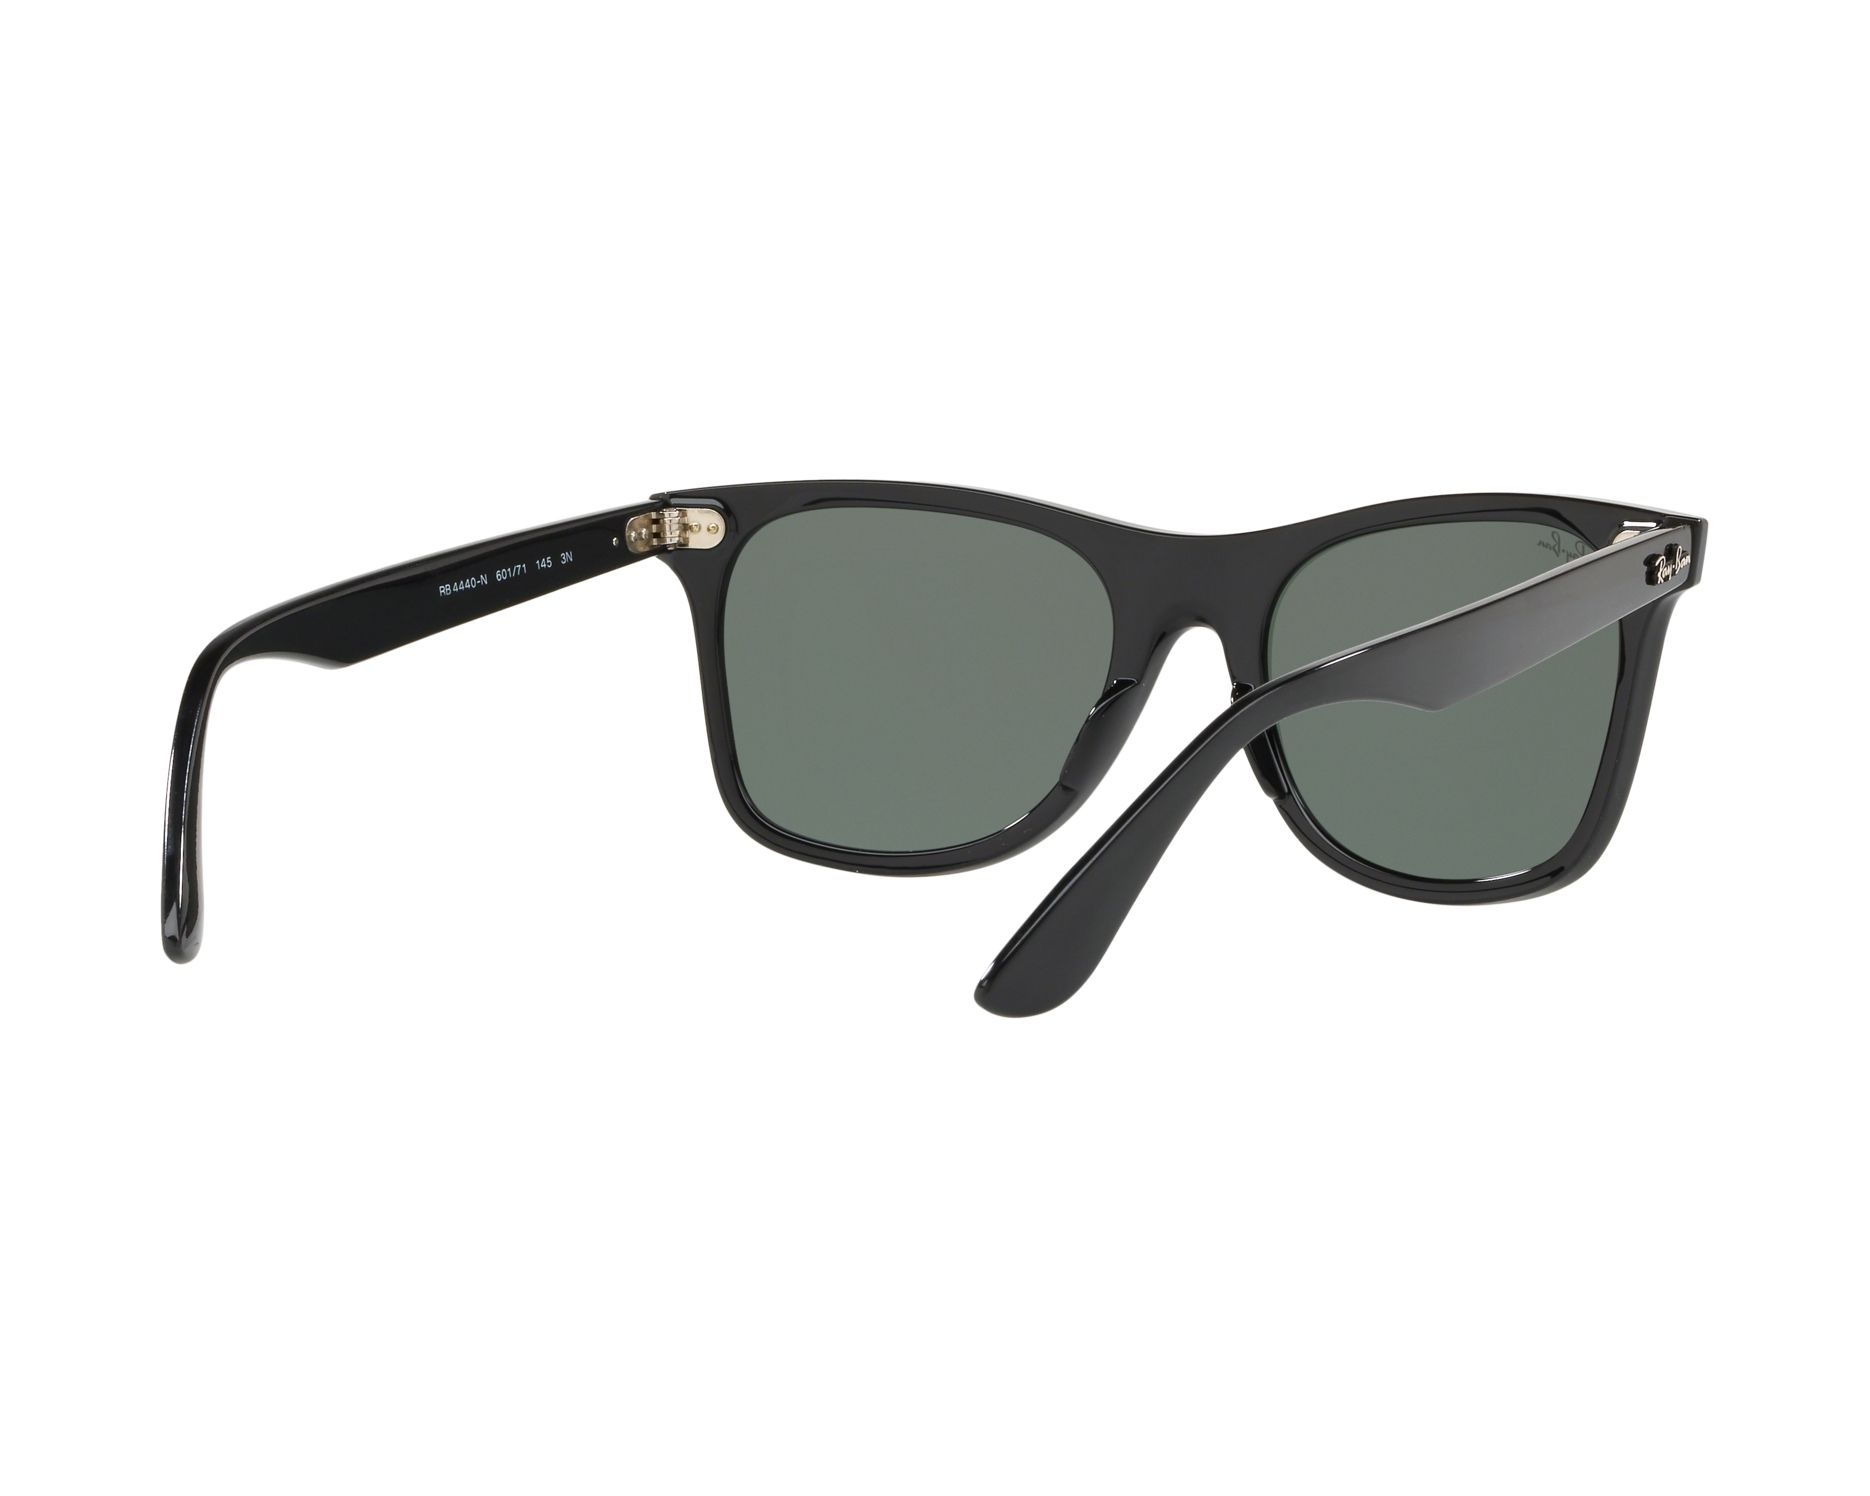 67a78bfdd6d70d Ray-Ban Sunglasses RB-4440-N 601/71 Black with Grey green